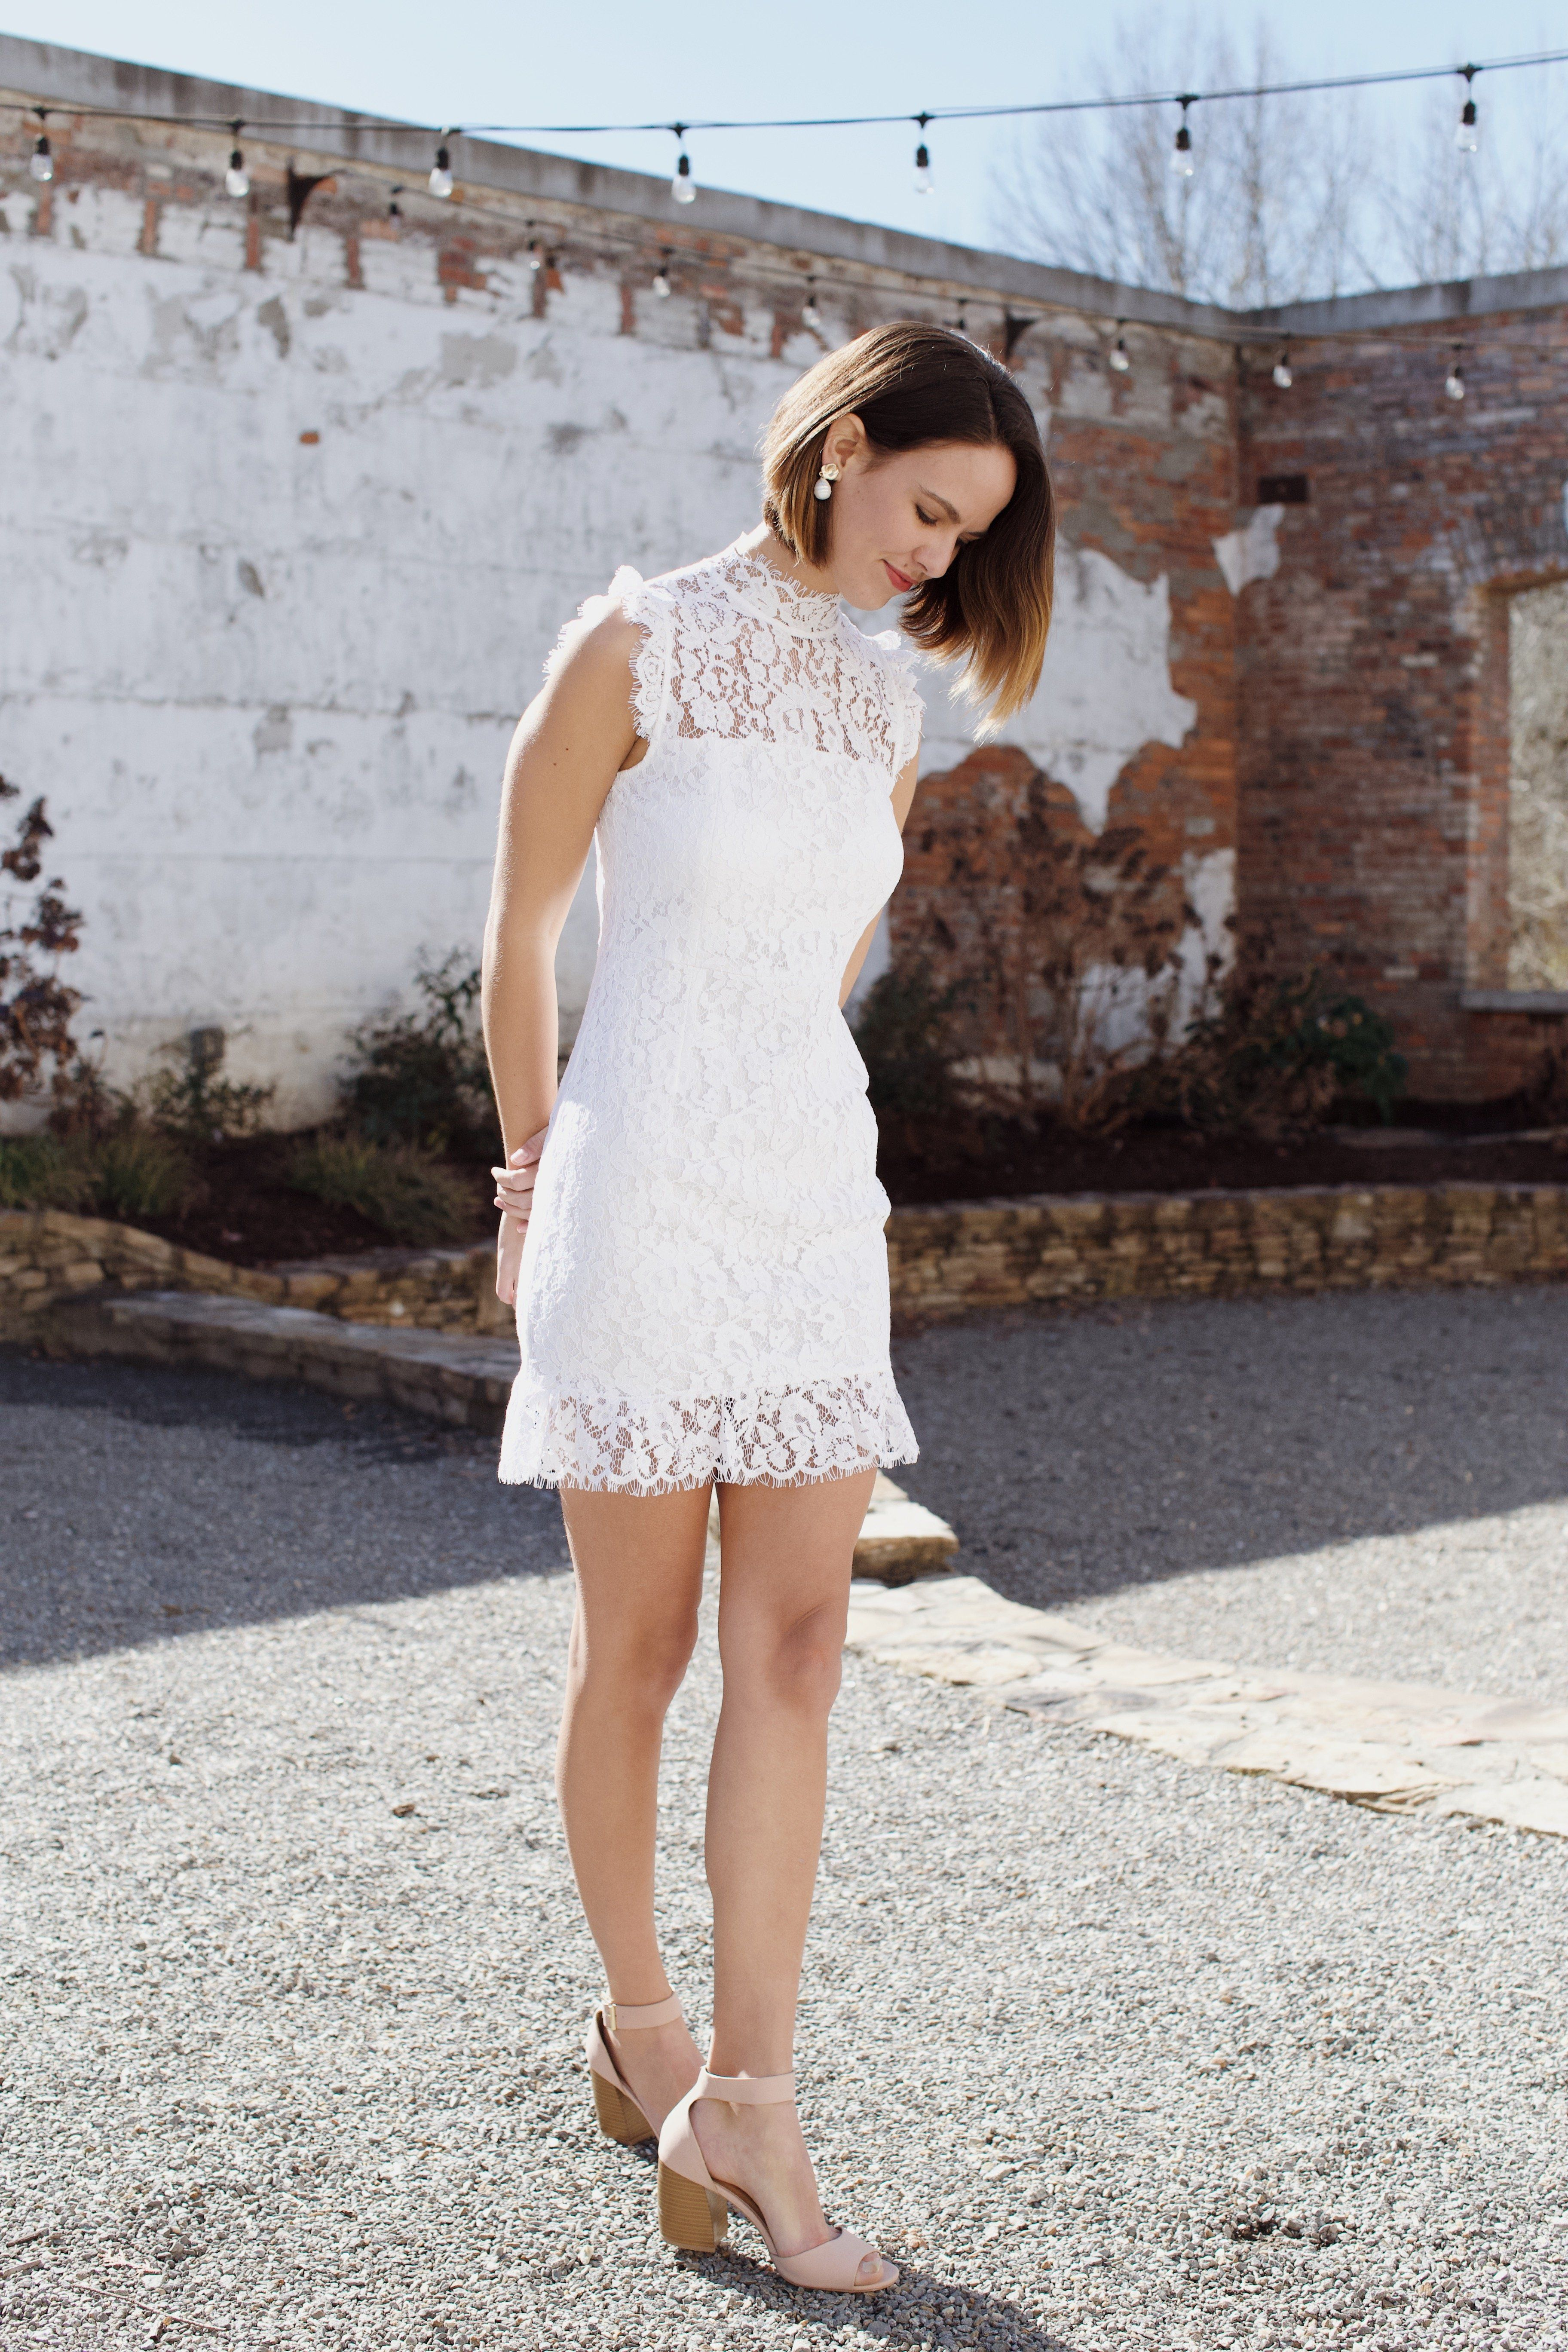 Pin By North Main Clothing Company On I Dream Of A Wedding Short White Cocktail Dresses White Dresses Graduation White Lace Dress Short [ 5472 x 3648 Pixel ]